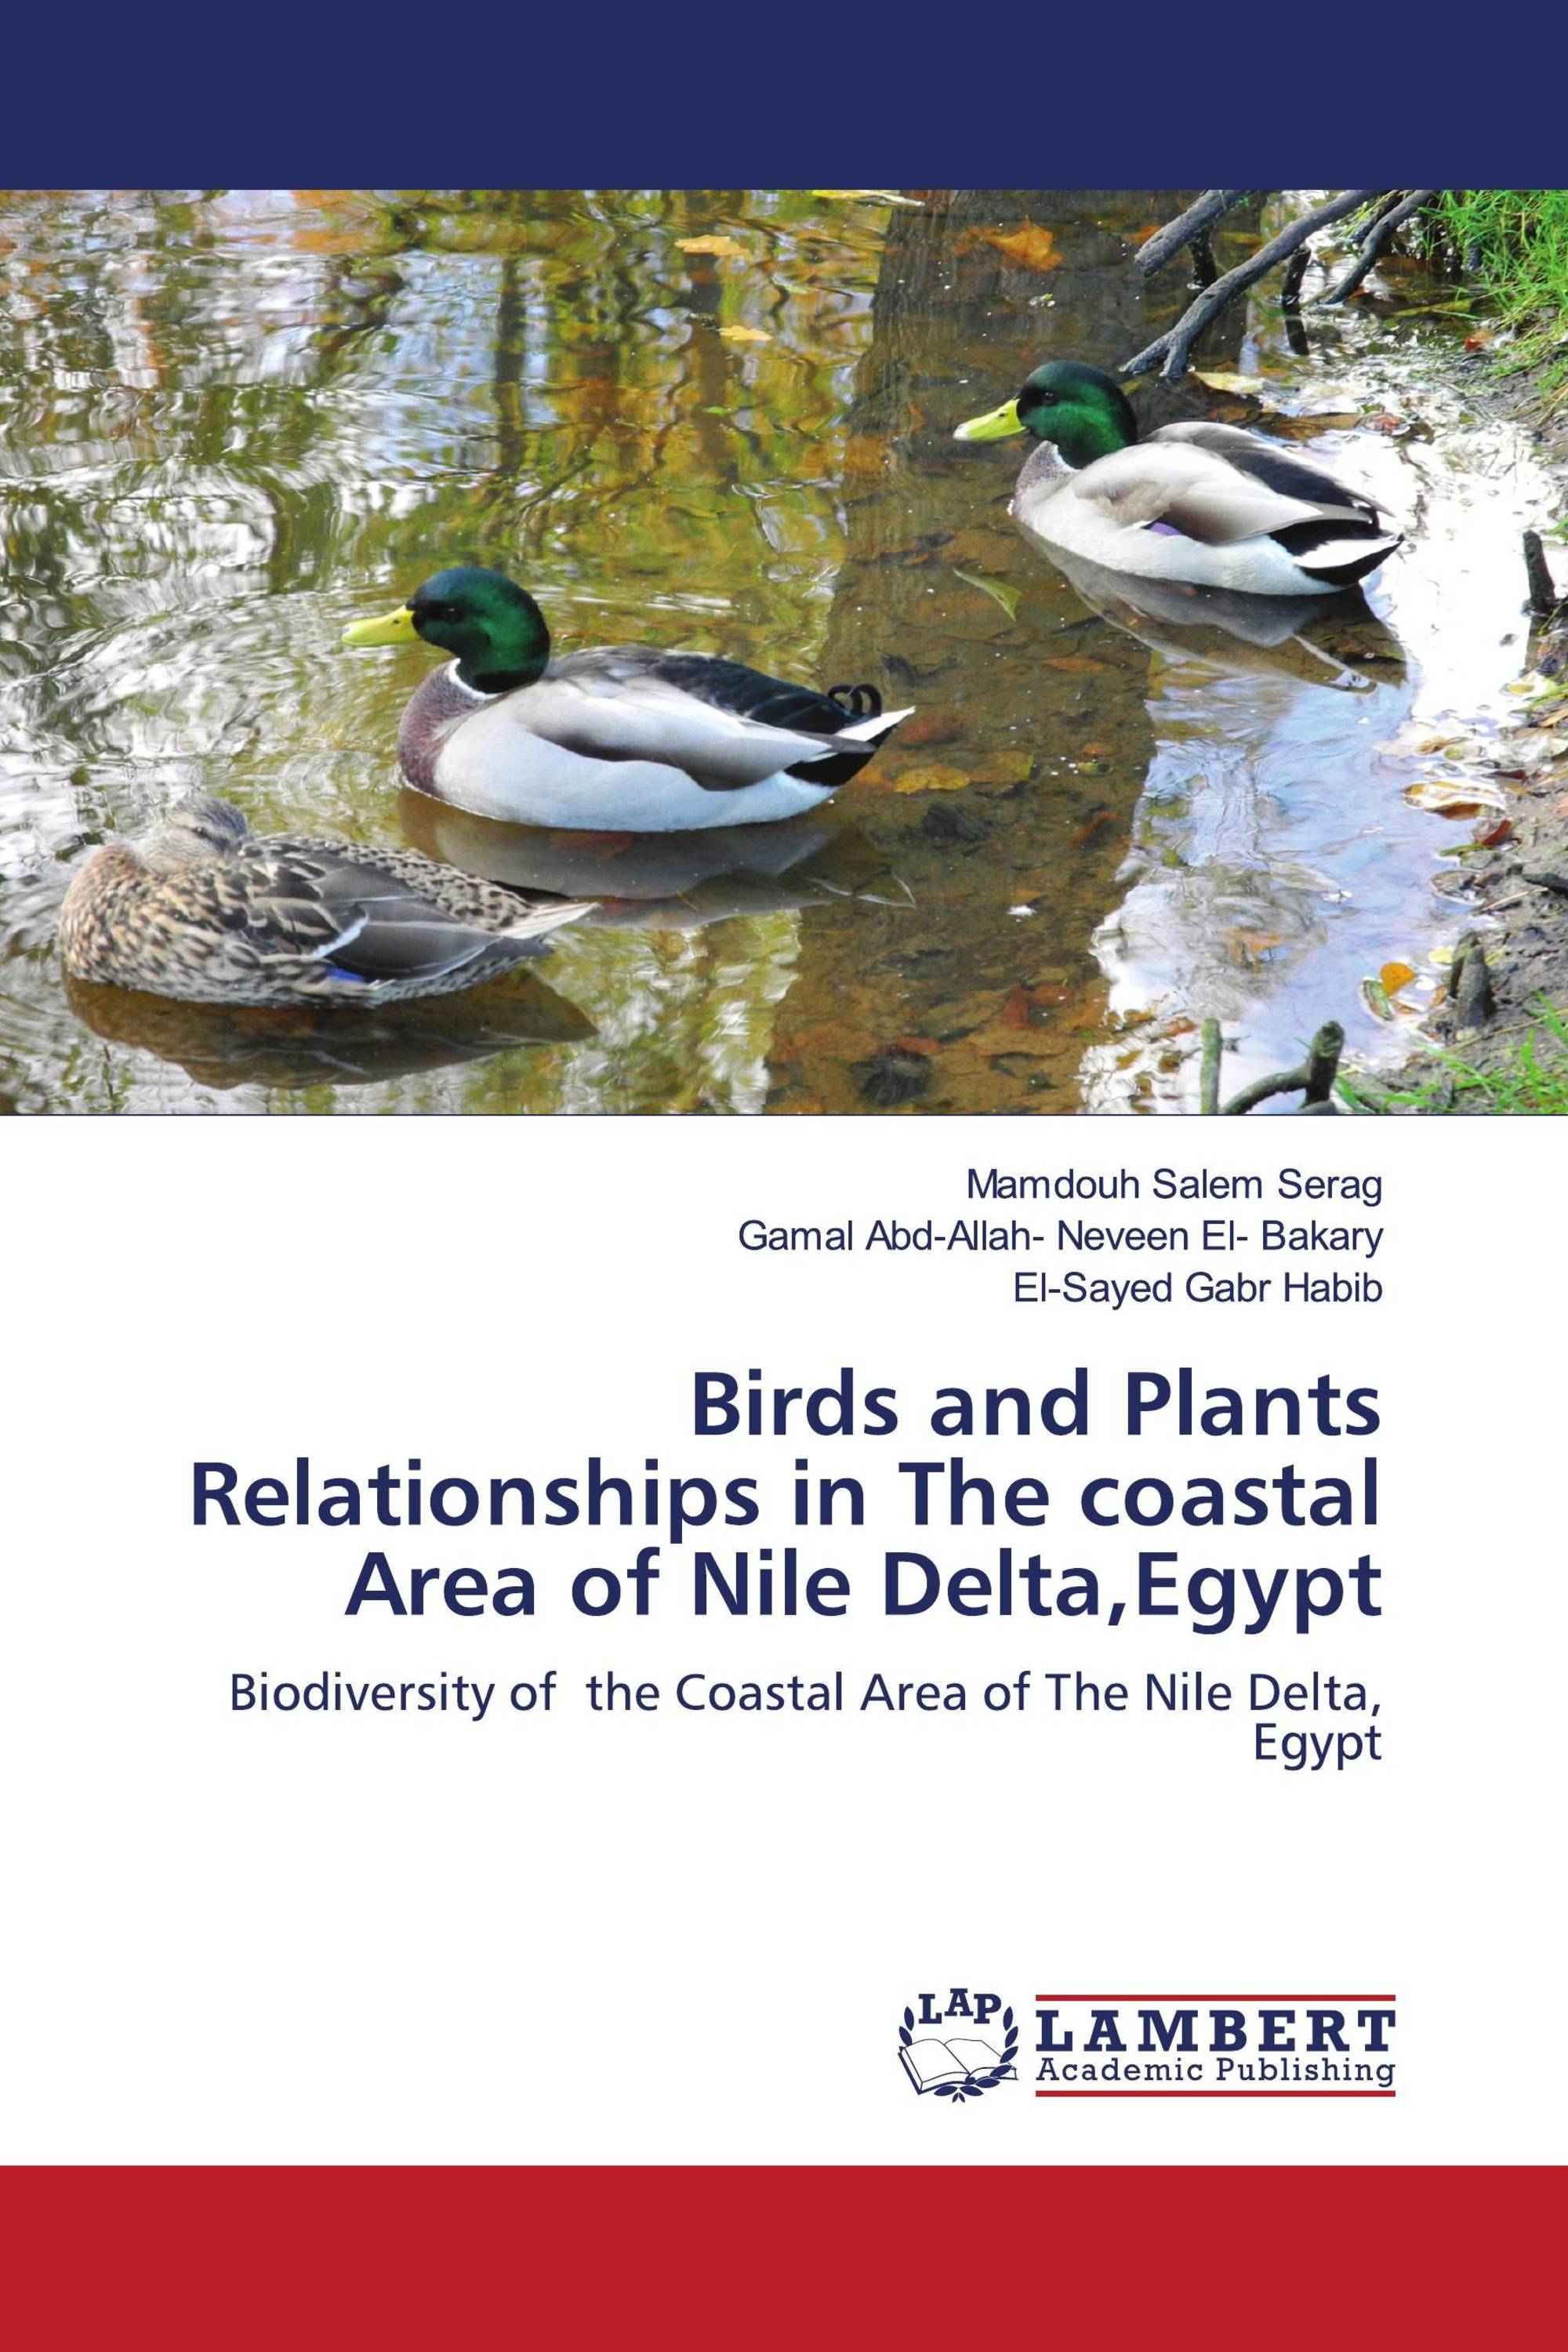 Birds and Plants Relationships in The coastal Area of Nile Delta,Egypt